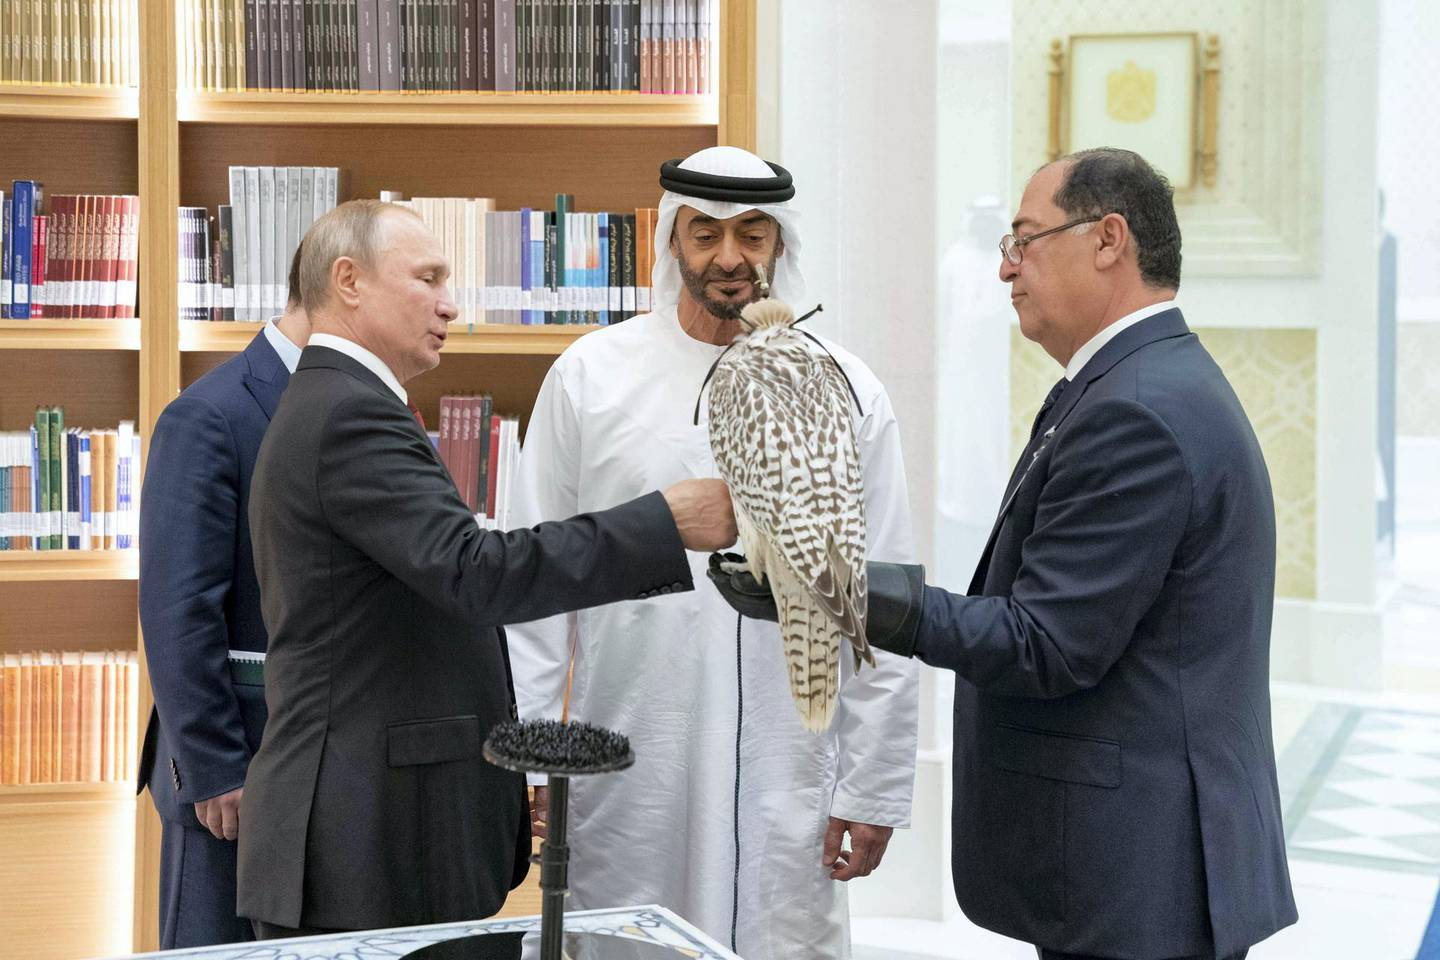 ABU DHABI, UNITED ARAB EMIRATES - October 15, 2019: HH Sheikh Mohamed bin Zayed Al Nahyan, Crown Prince of Abu Dhabi and Deputy Supreme Commander of the UAE Armed Forces (C) and HE Vladimir Putin Vladimirovich, President of Russia (L), exchange gifts during a state visit at Qasr Al Watan.( Mohamed Al Hammadi / Ministry of Presidential Affairs )---